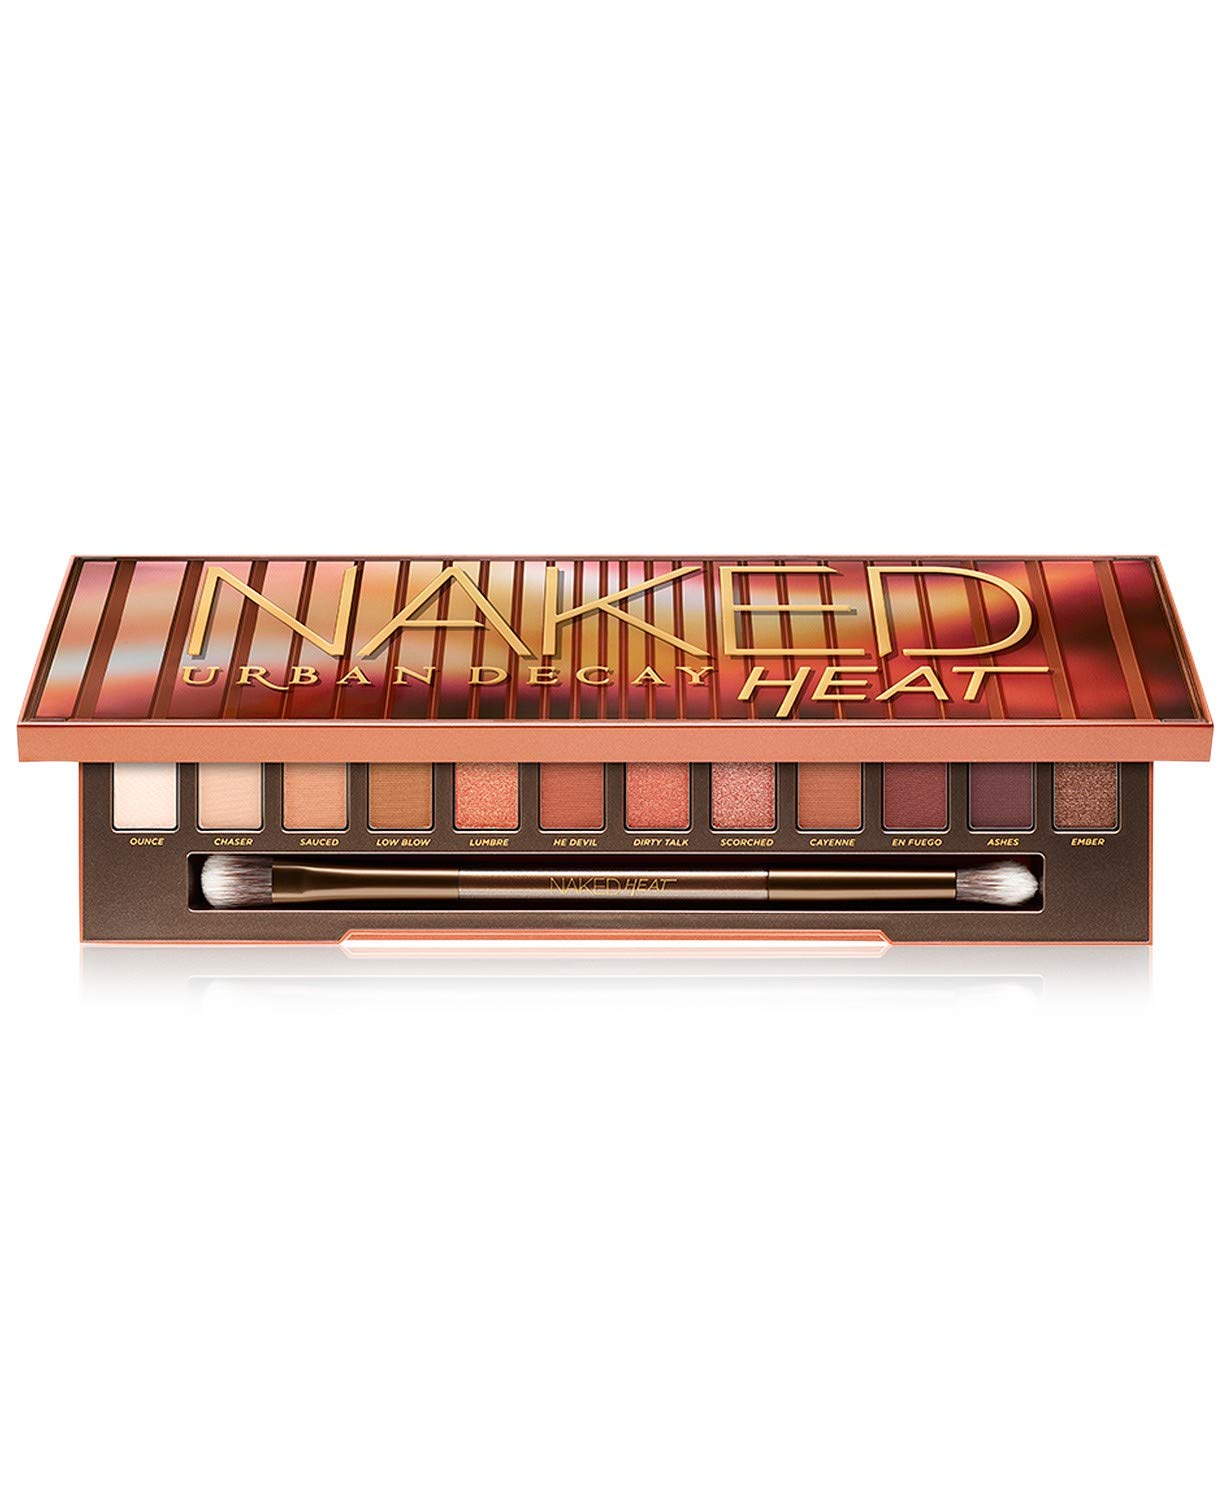 URBAN DECAY Naked Heat Eye Palette (12 X 0.05 Eyeshadow + Double Ended Blending/Detailed Crease Brush) 0.05 Ounce/1.45g, multi-color